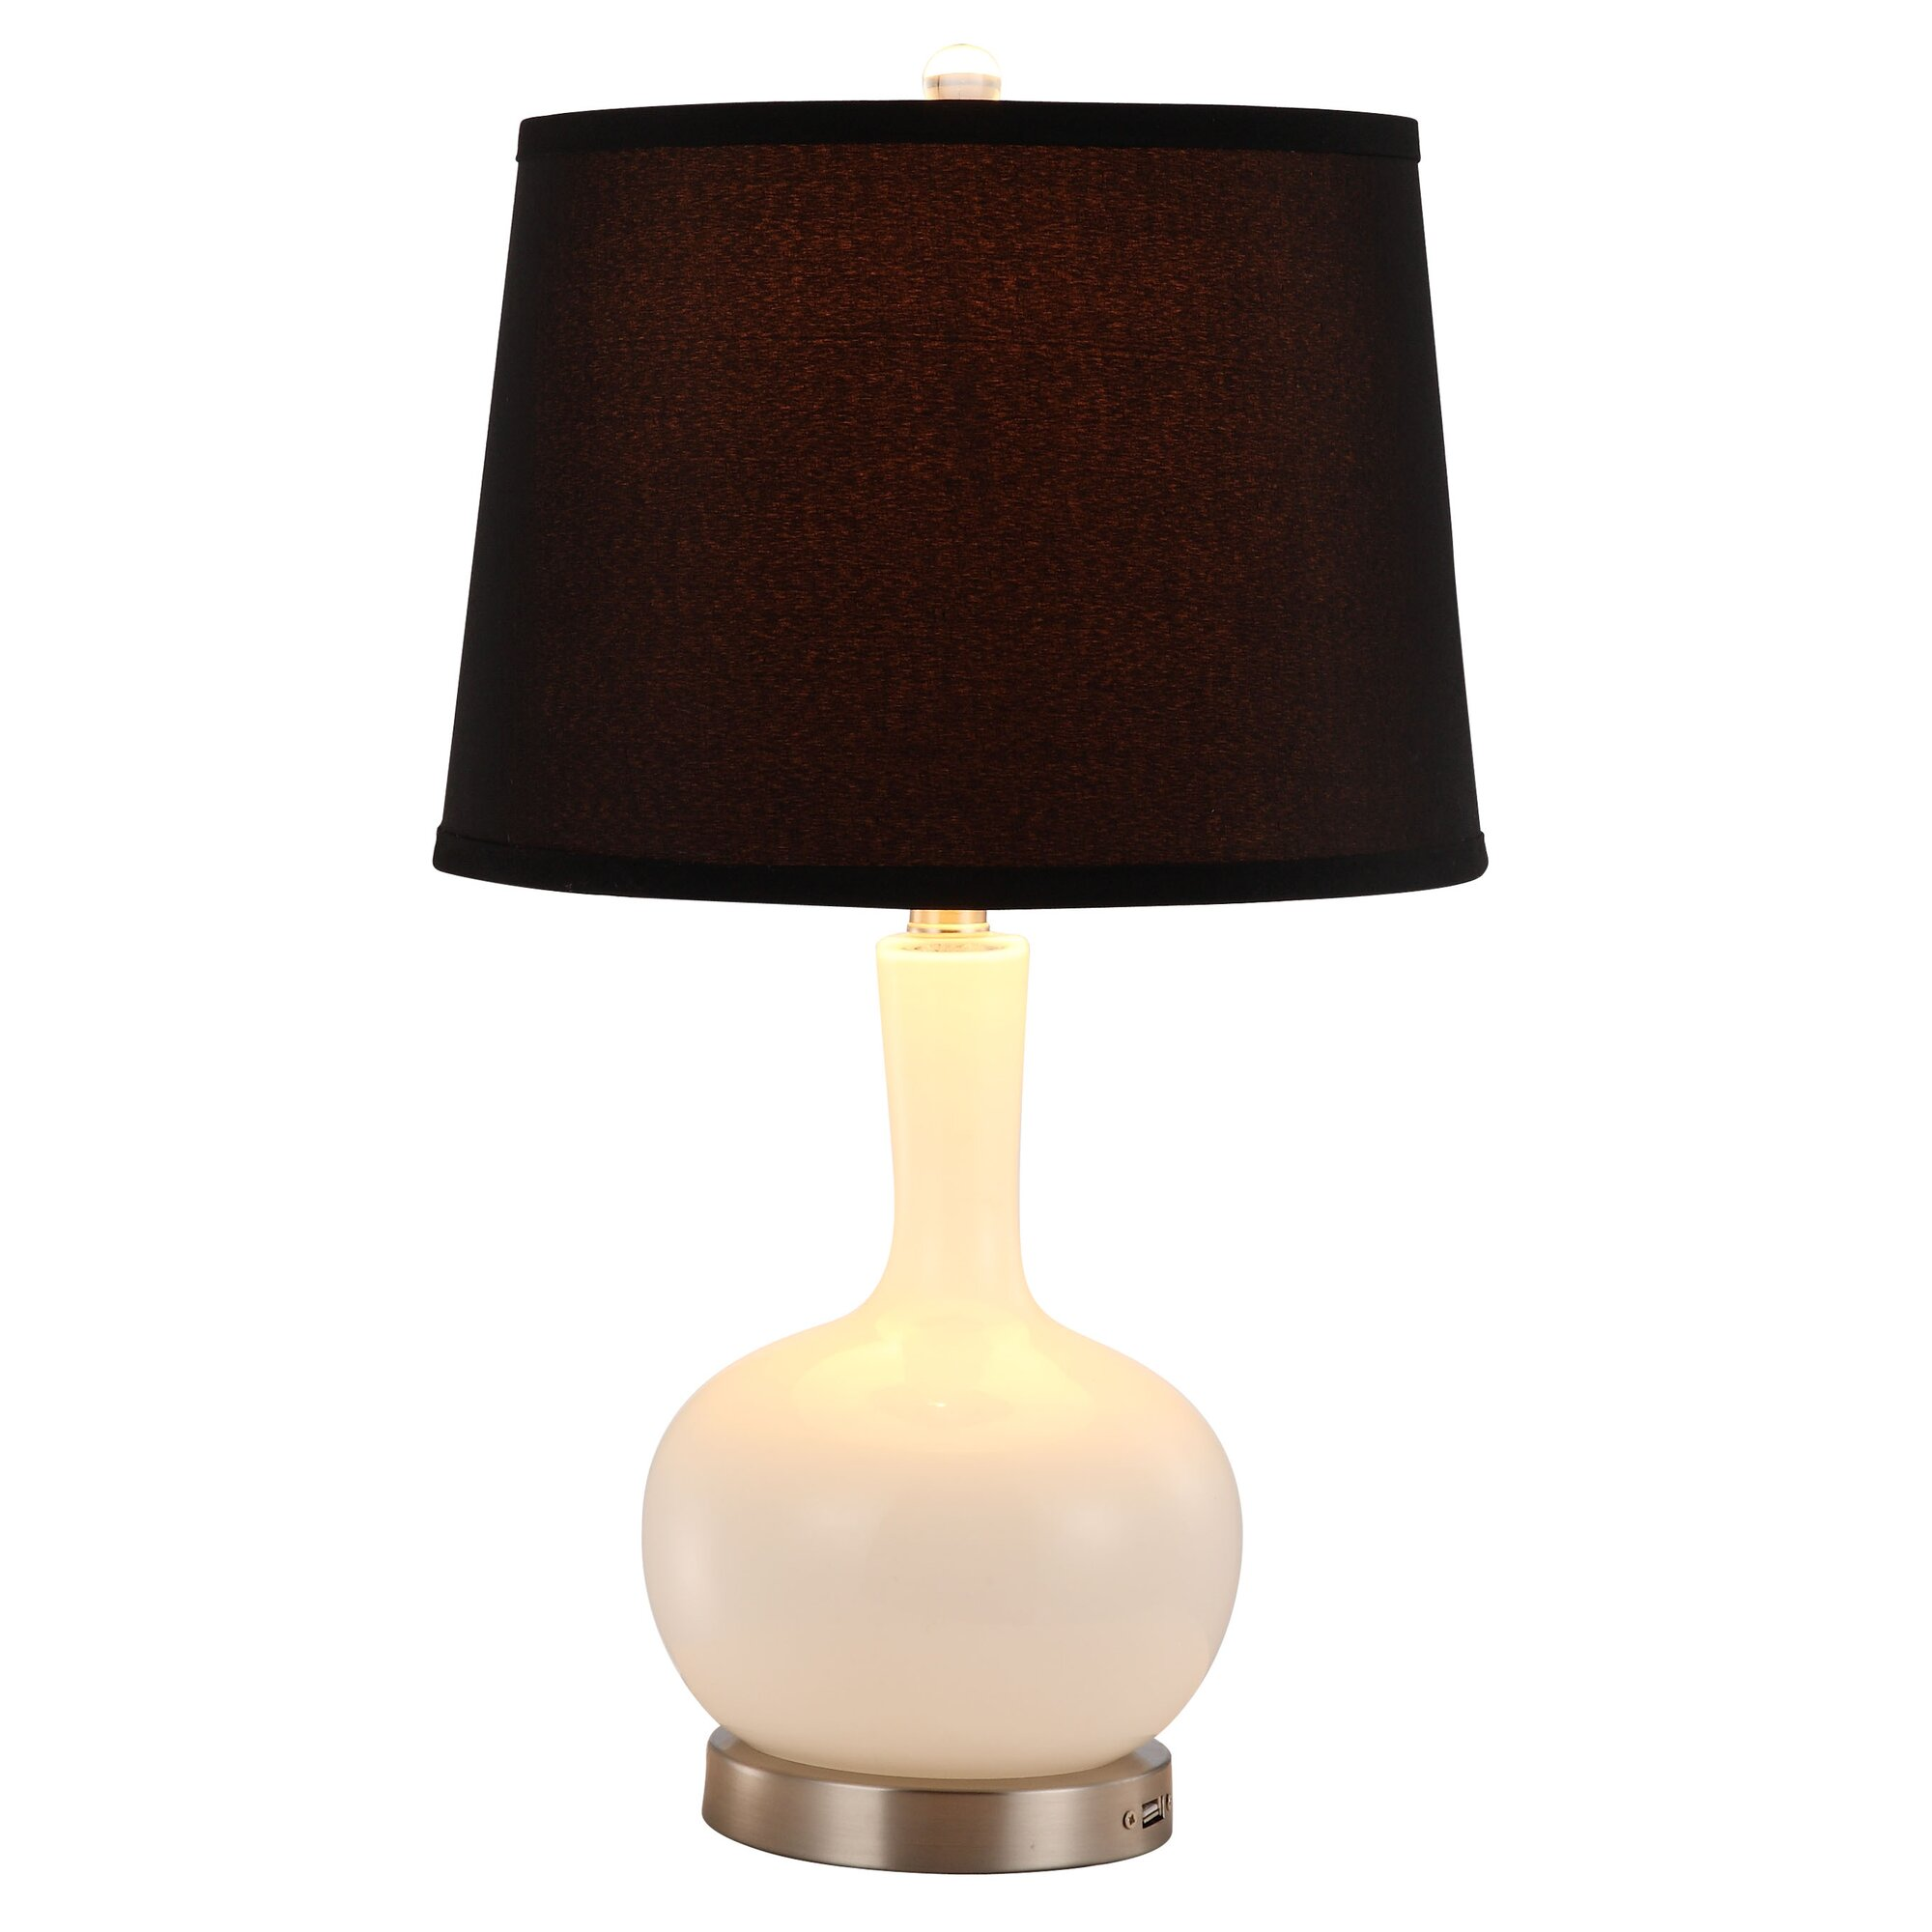 Rely a light llc ellen 19 table lamp reviews wayfair for Table 19 review